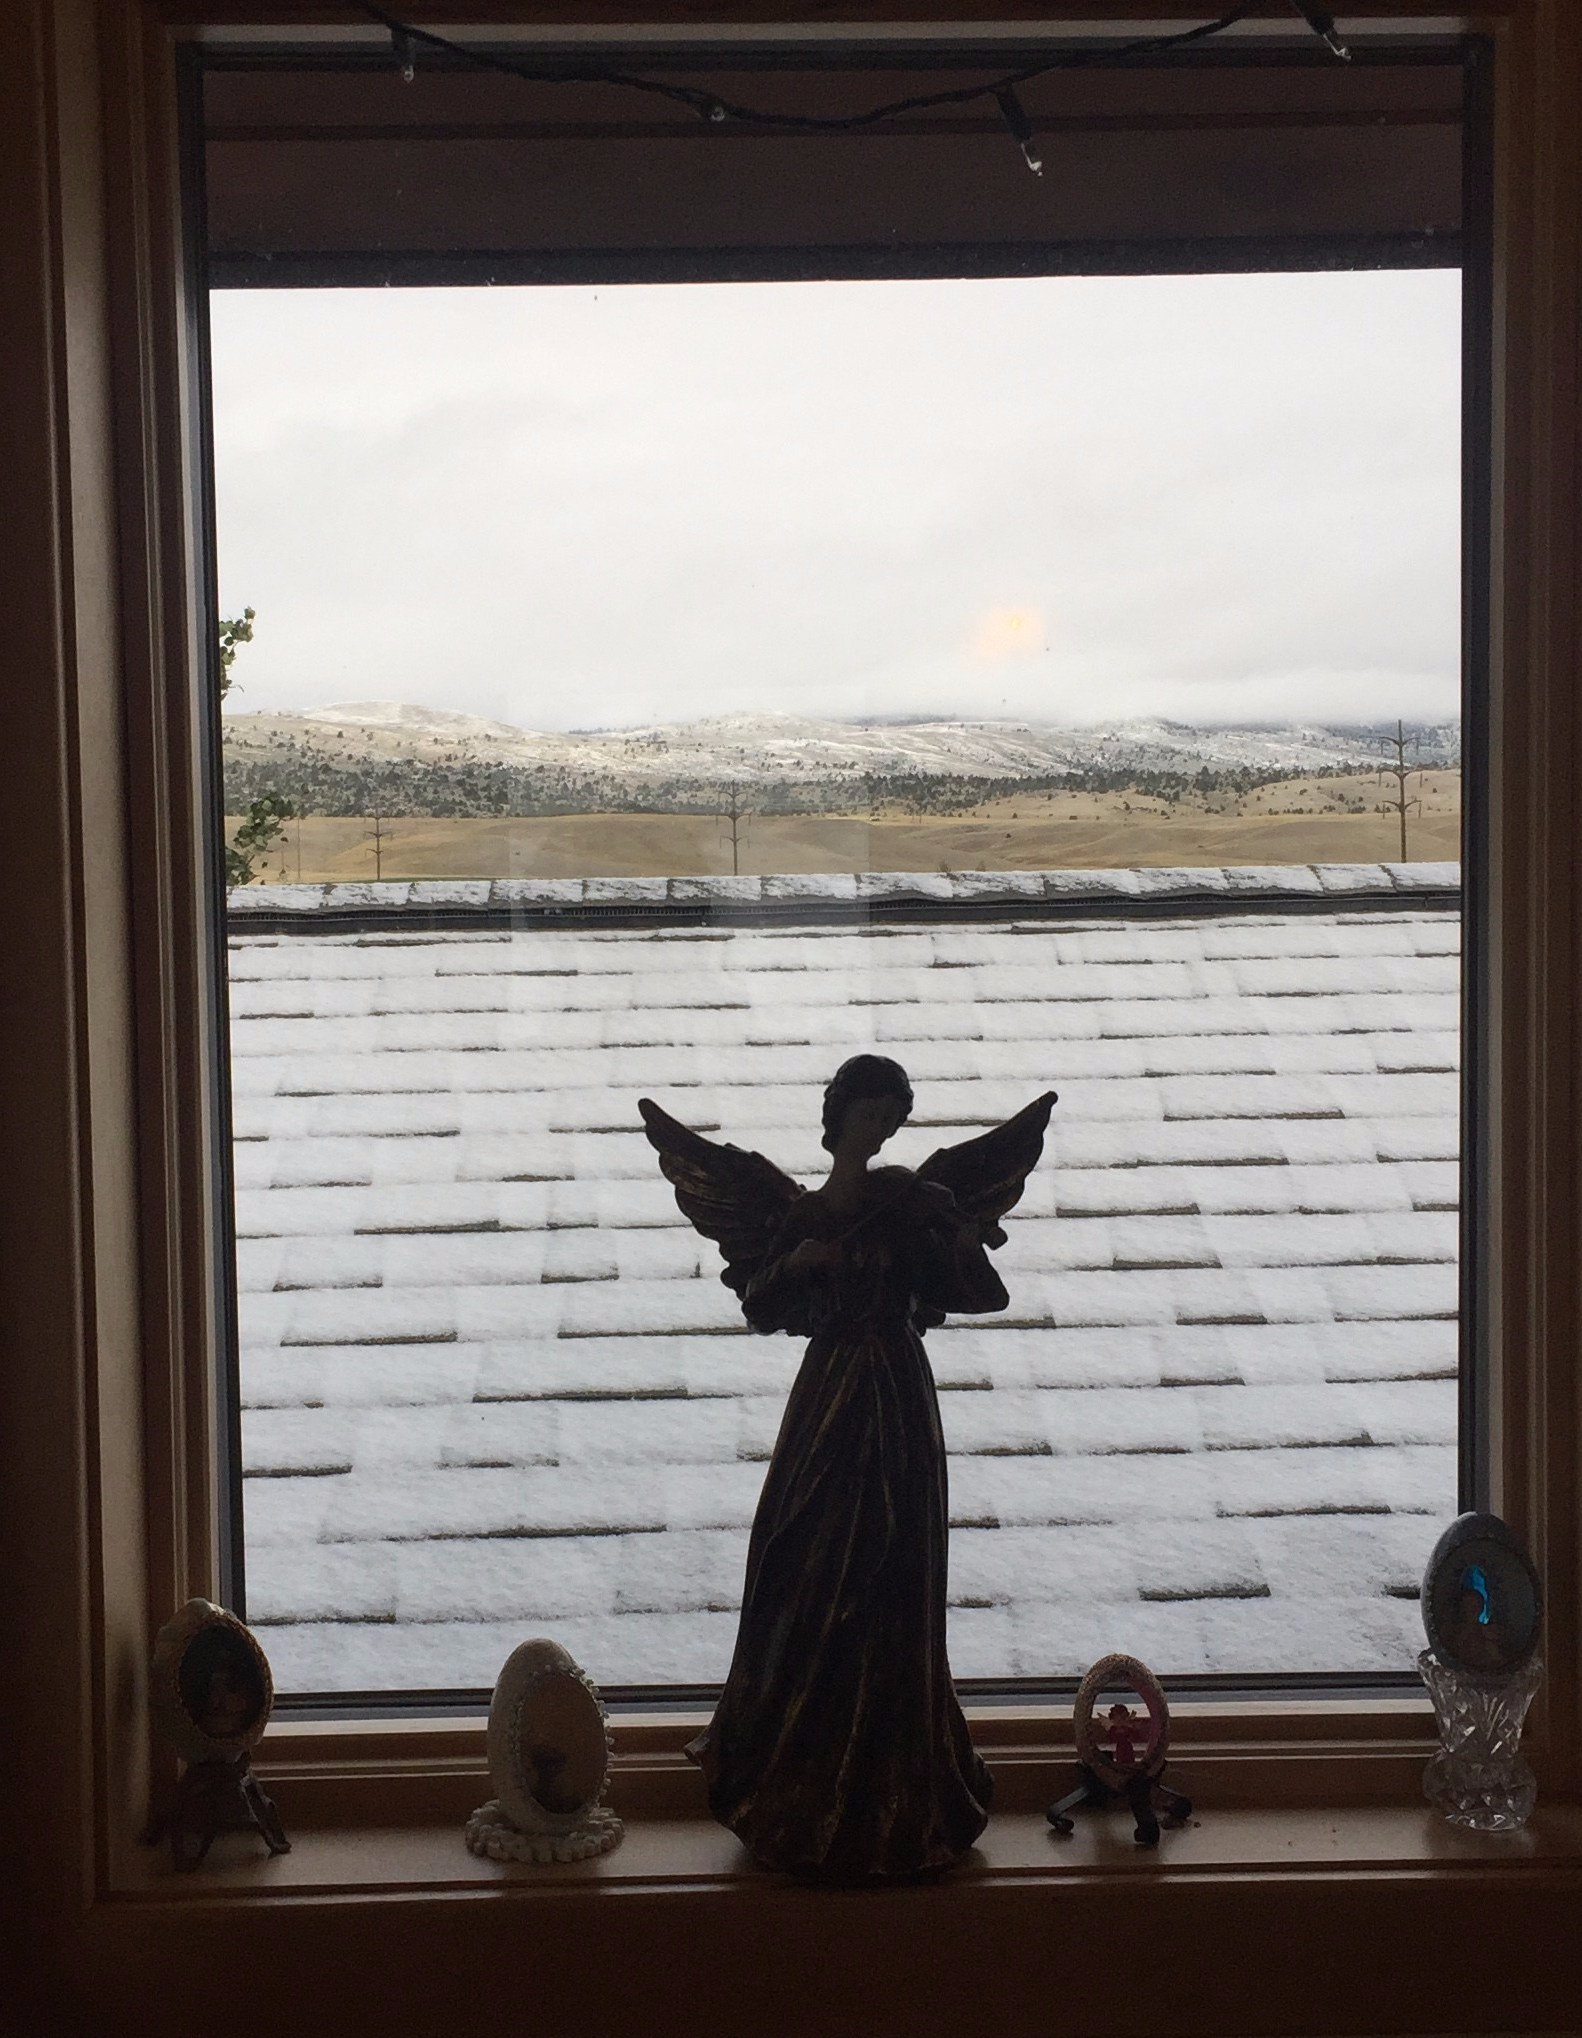 angel-in-snowy-window.jpg